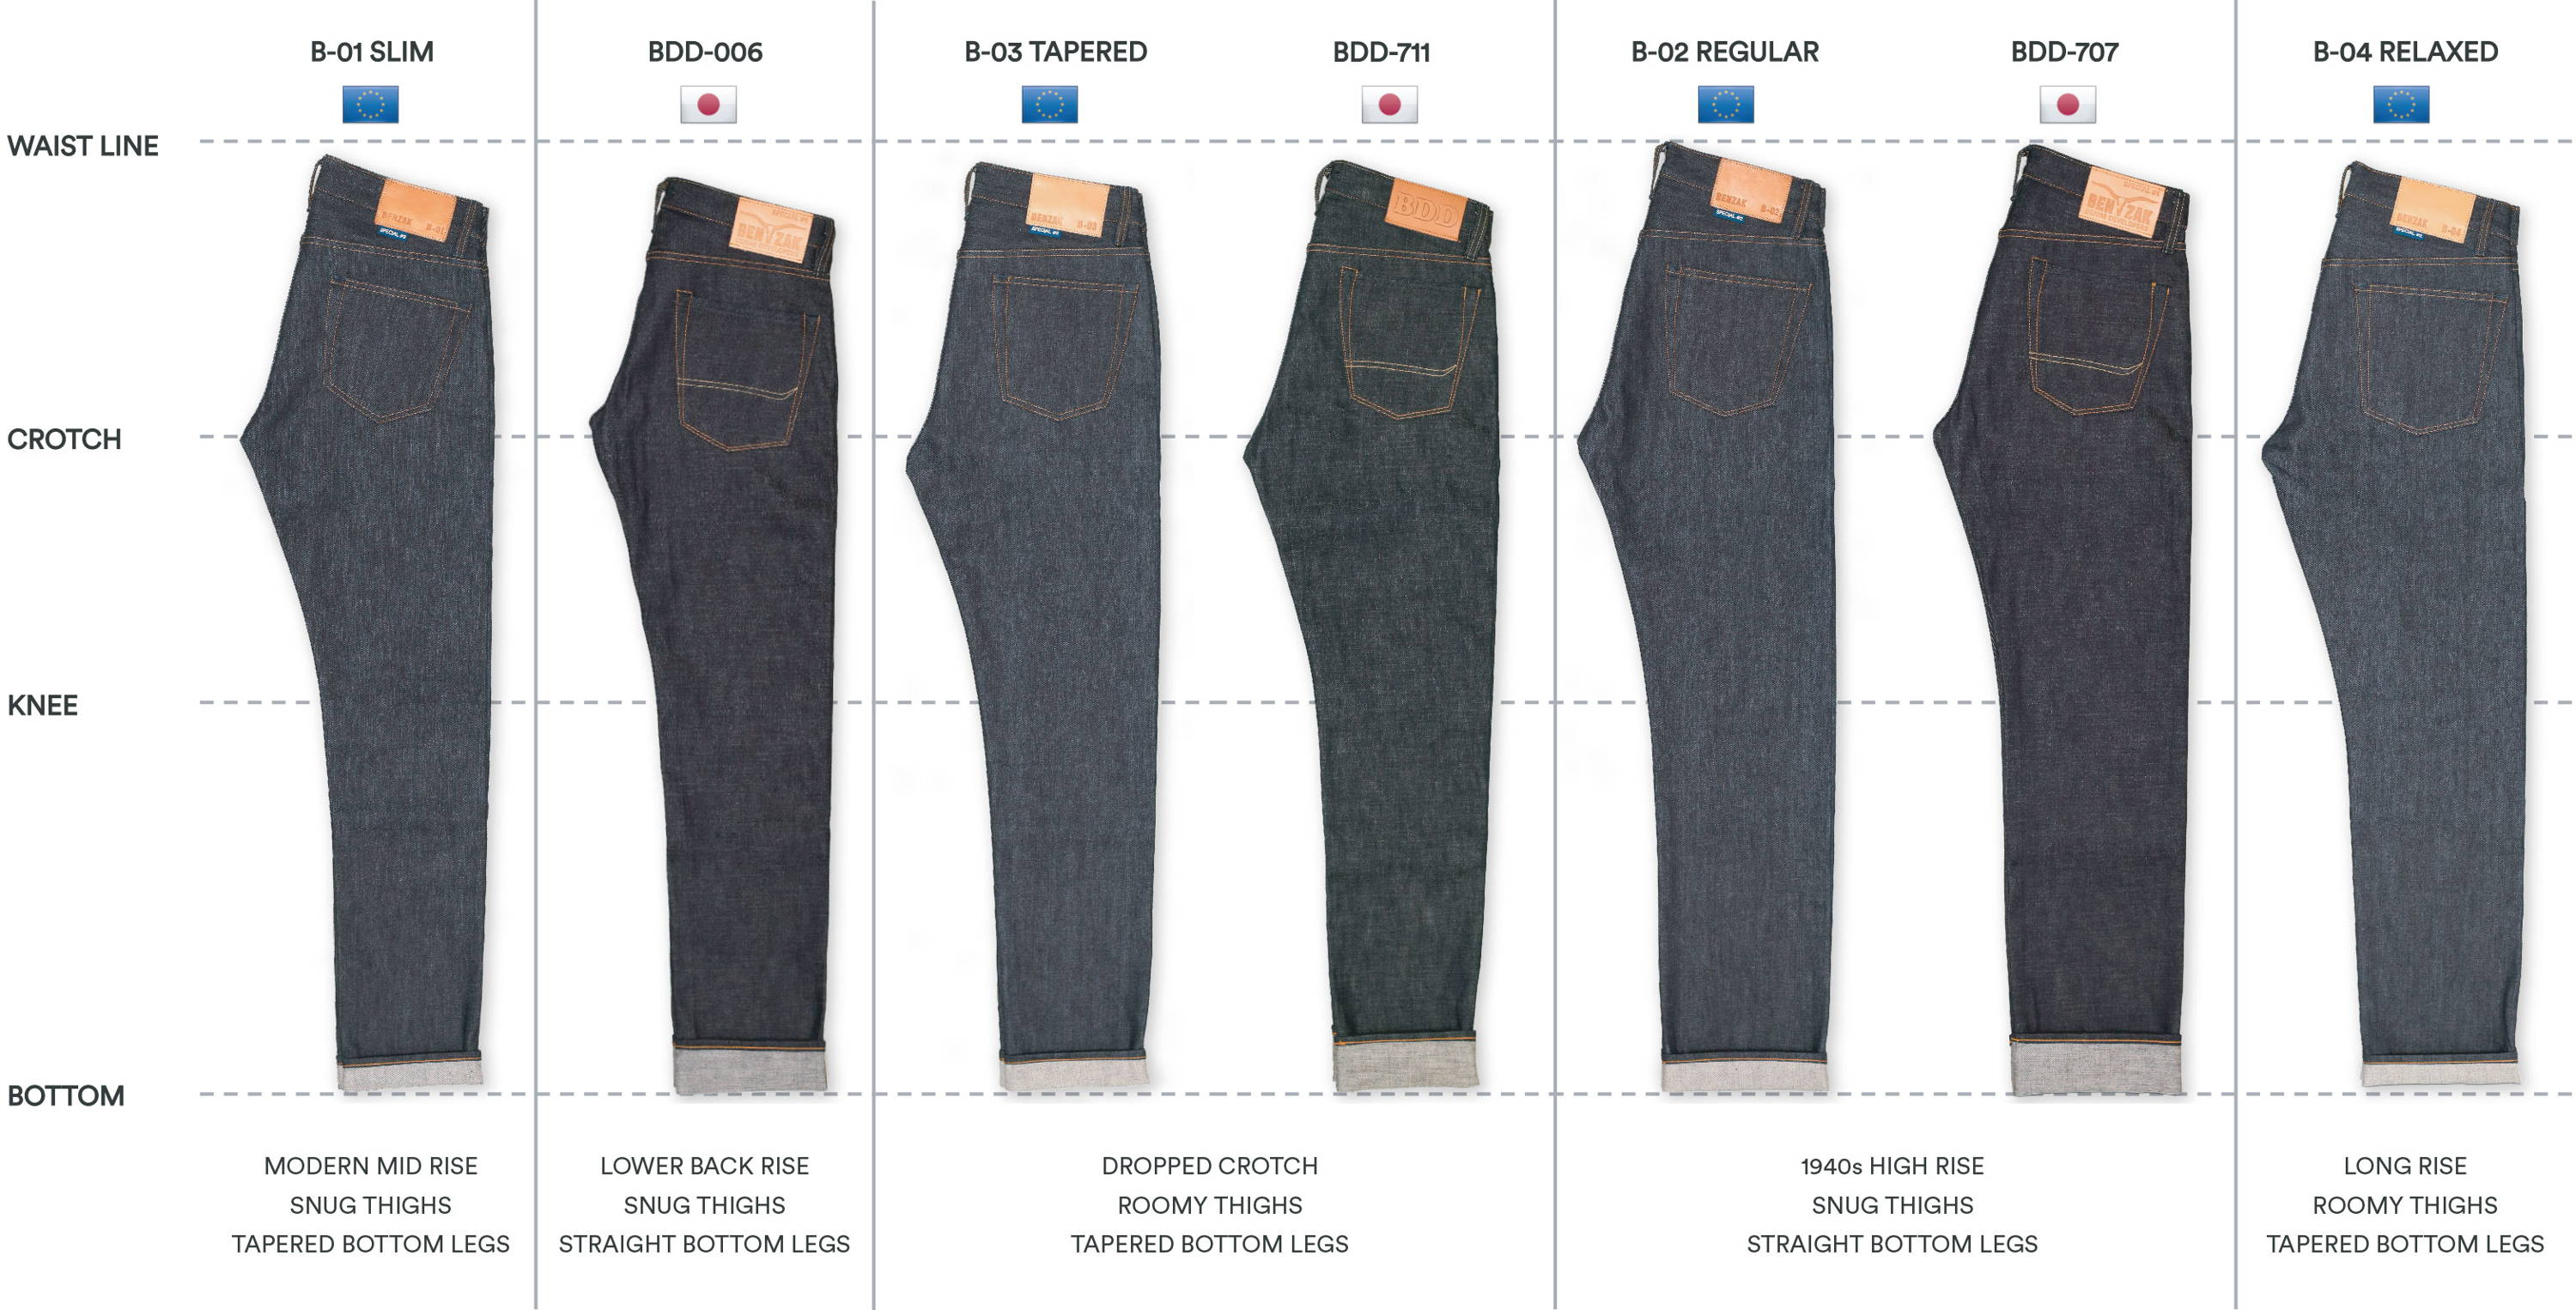 japanese denim crafted by european brand benzak denim developers. B-01 slim, bdd-006, b-03 tapered, bdd-711, b-02 regular, bdd-707, b-04 relaxed